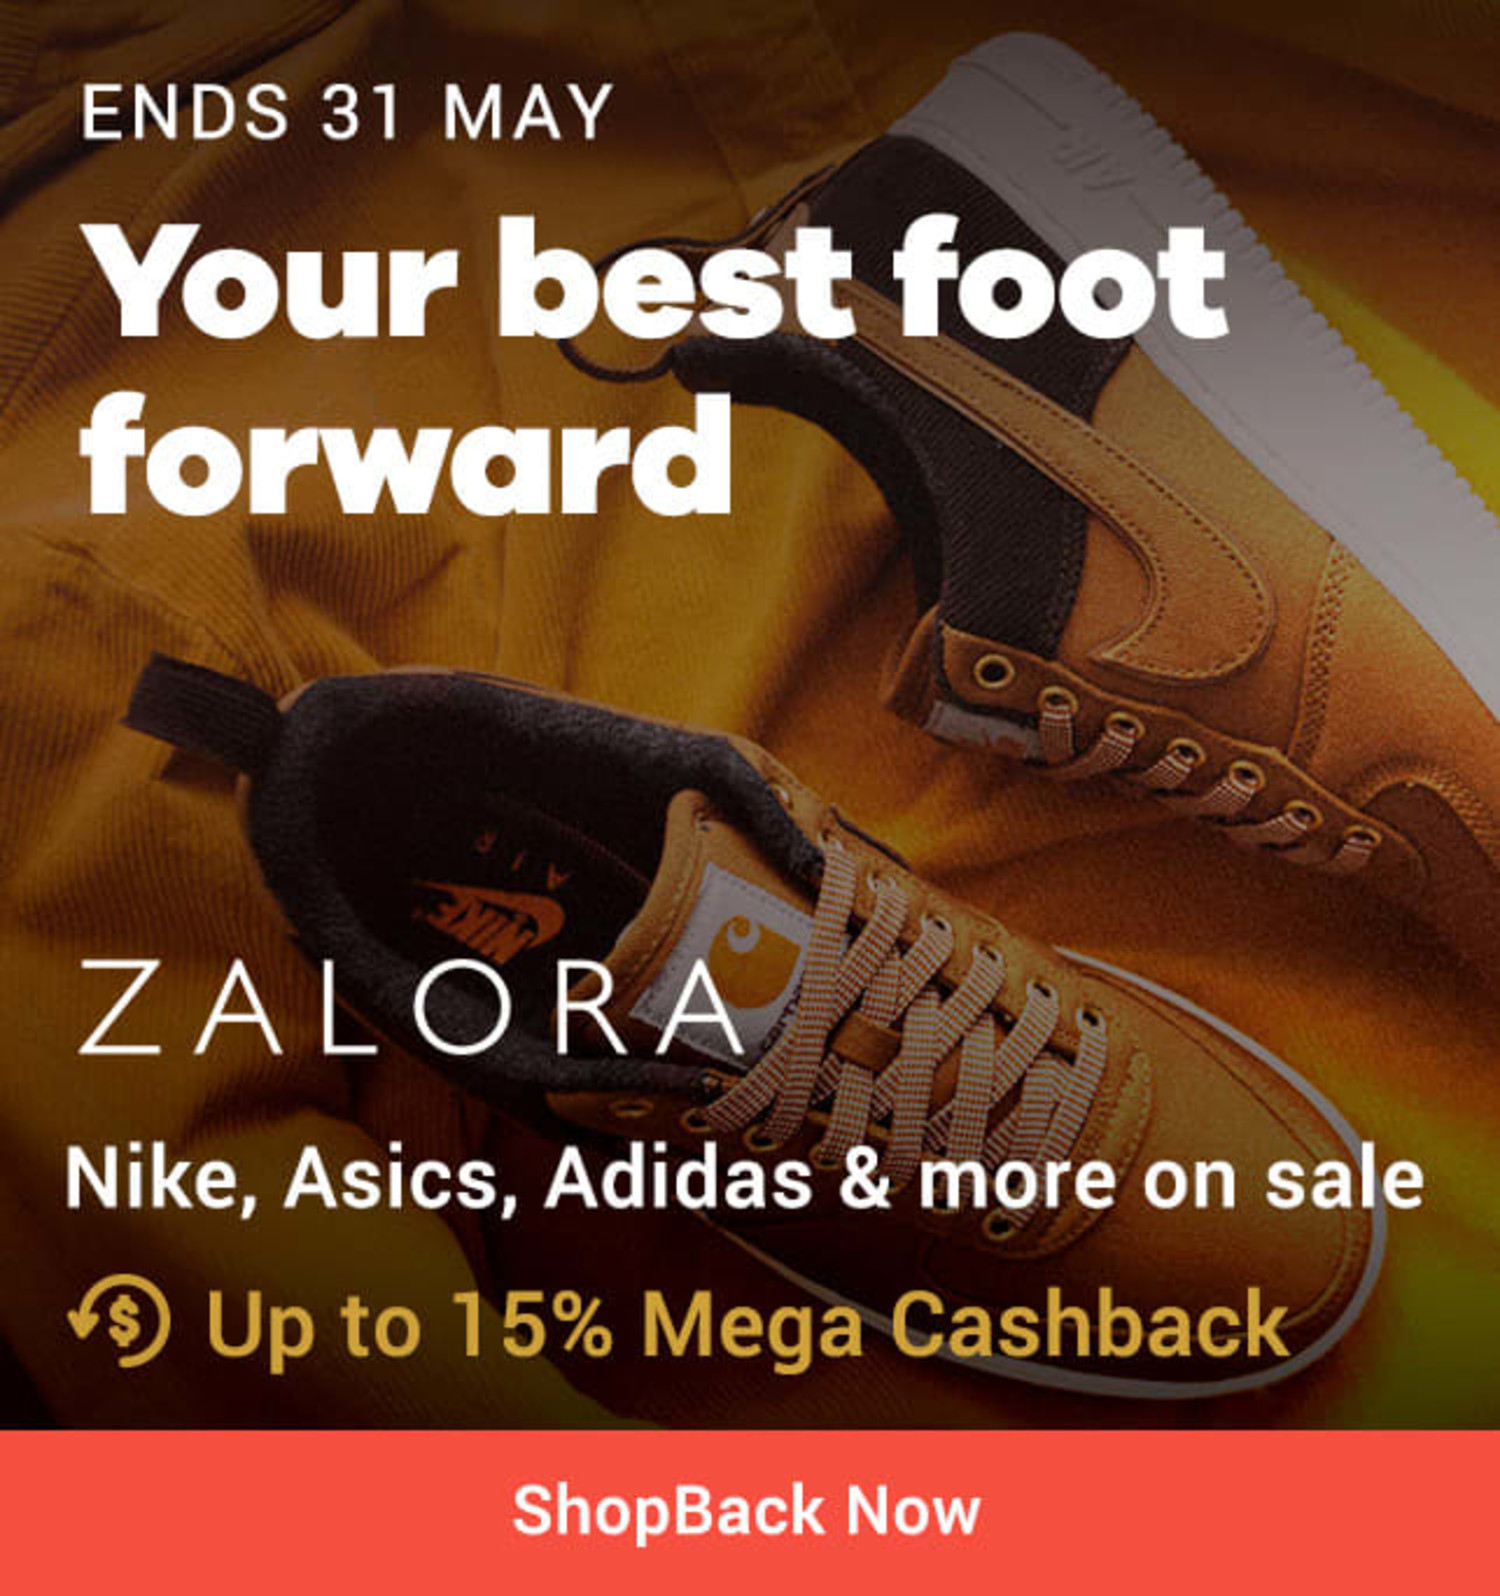 Ends 31 May ZALORA Your best foot forward: Nike, Asics, Adidas & more on sale + Up to 15% Mega Cashback (was 2%)